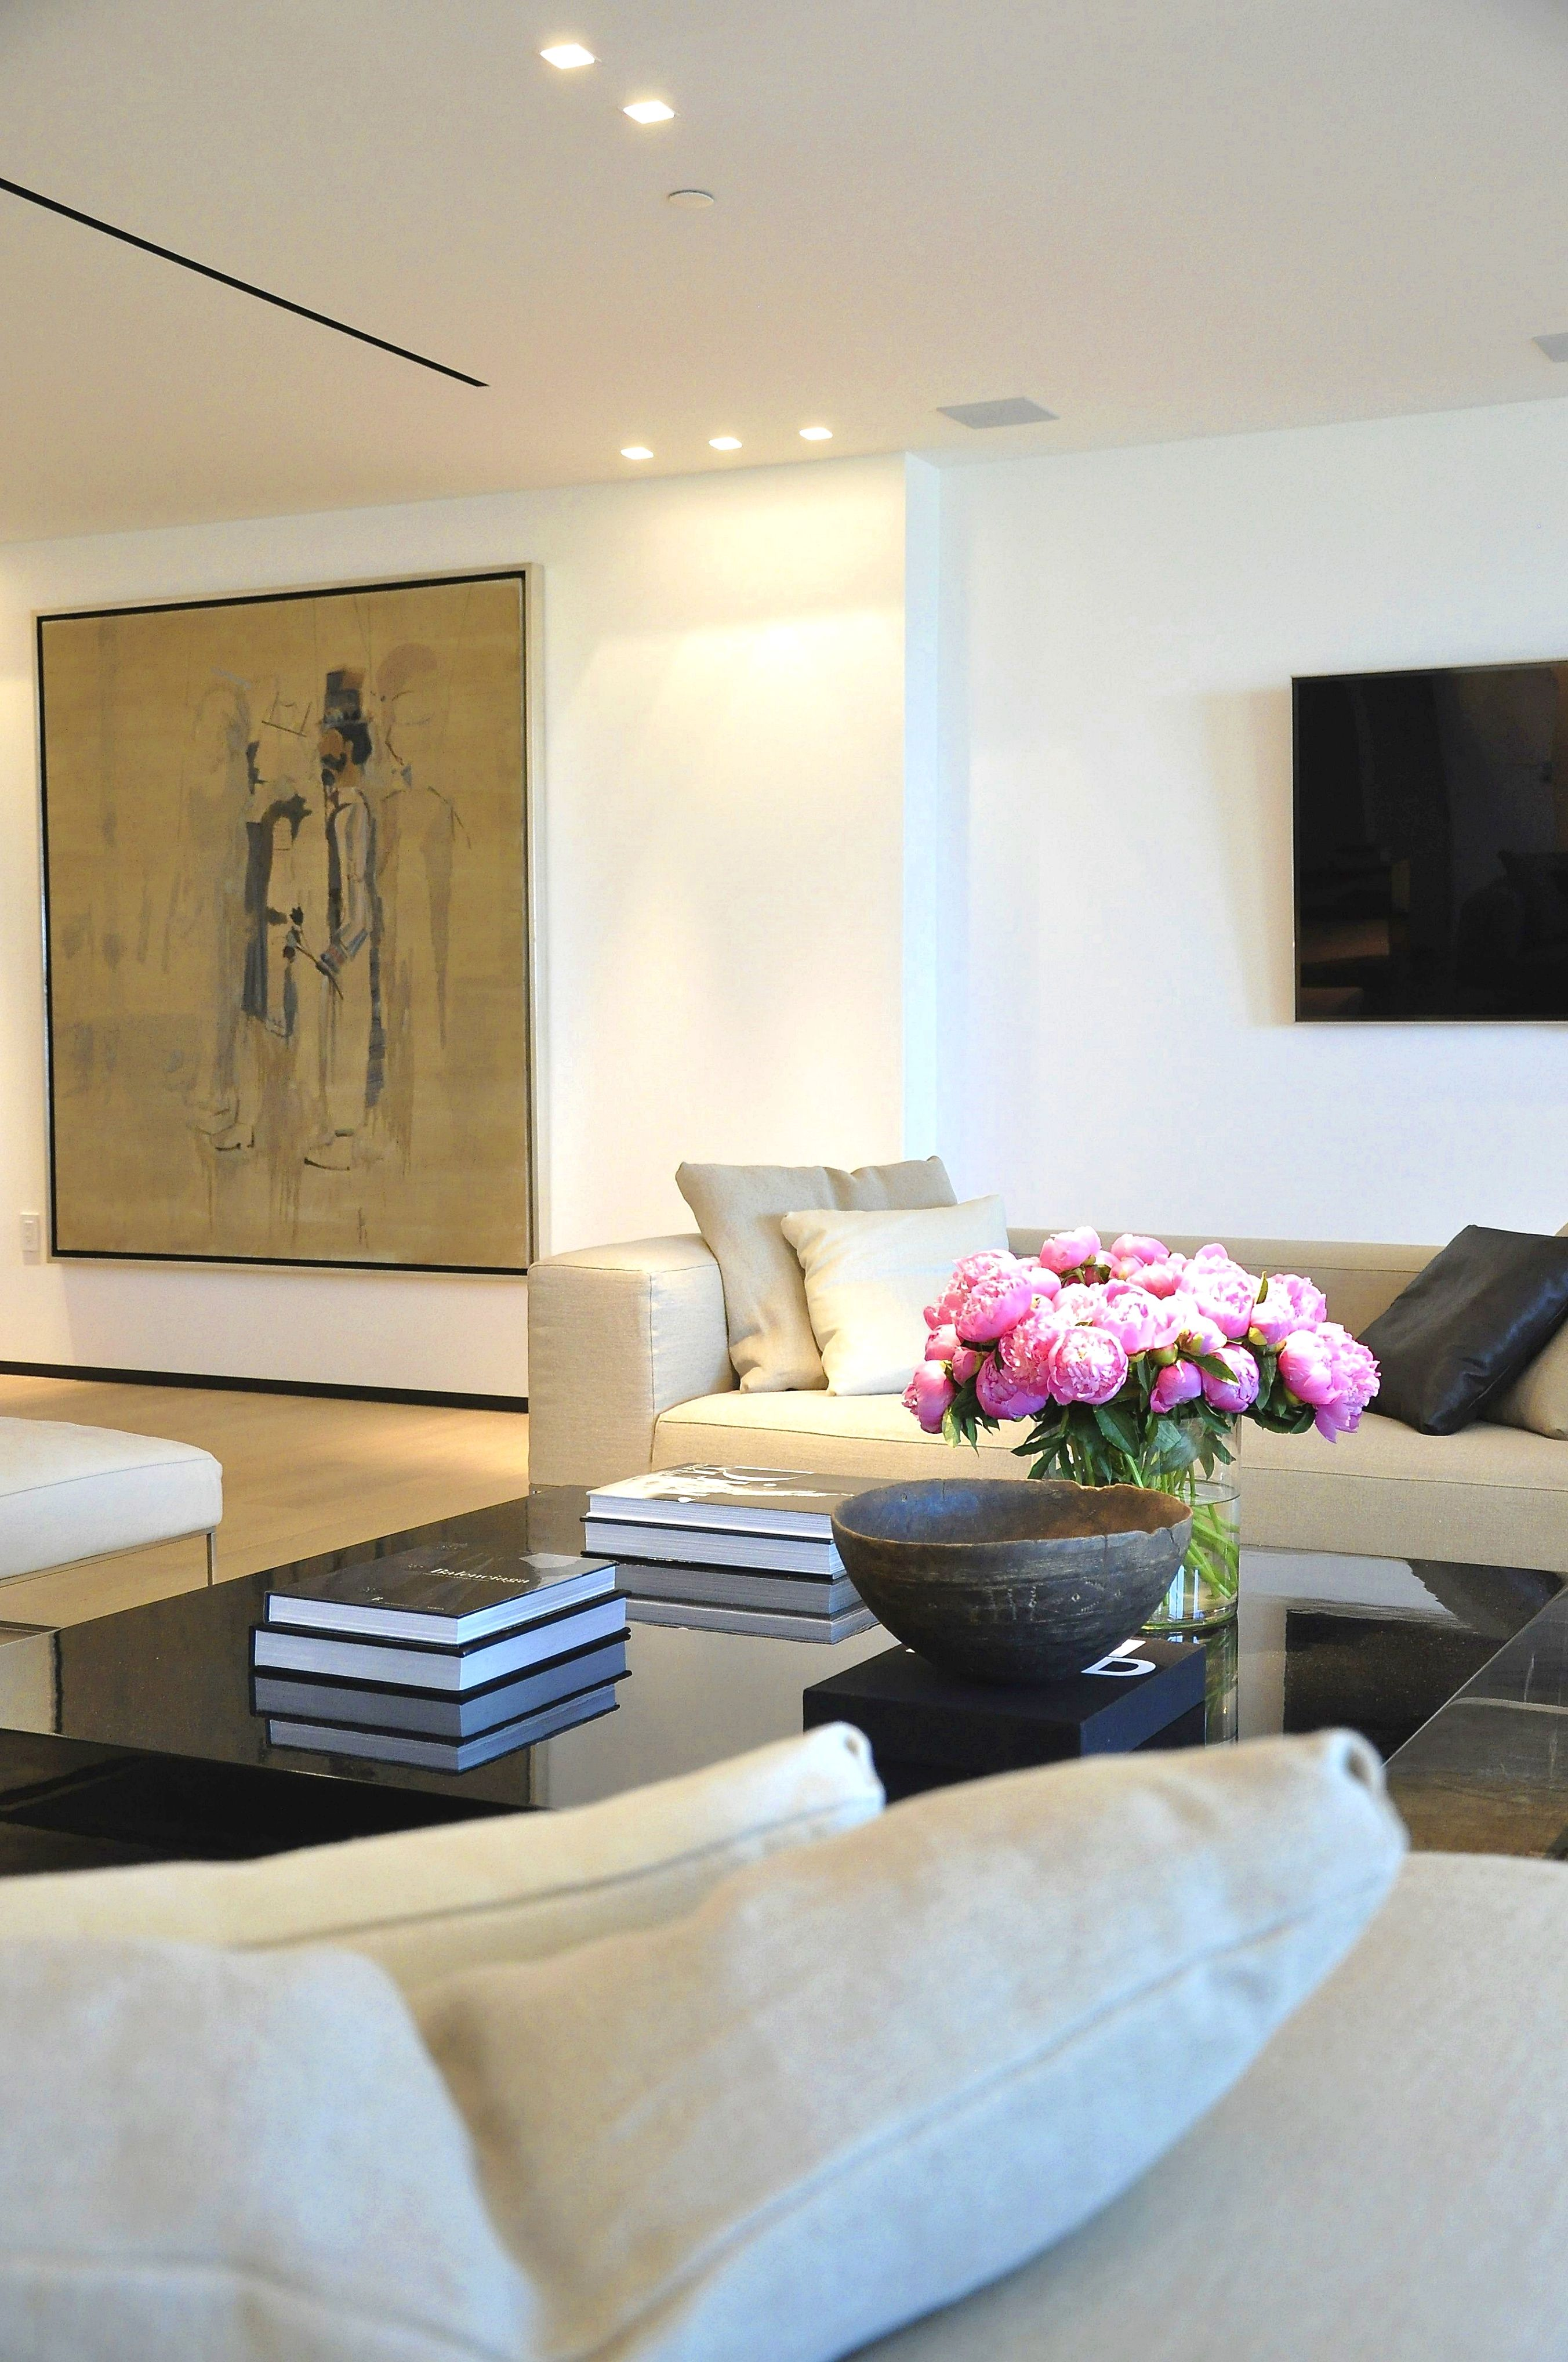 How To Organize Your Living Room And Keep It Clutter Free Living